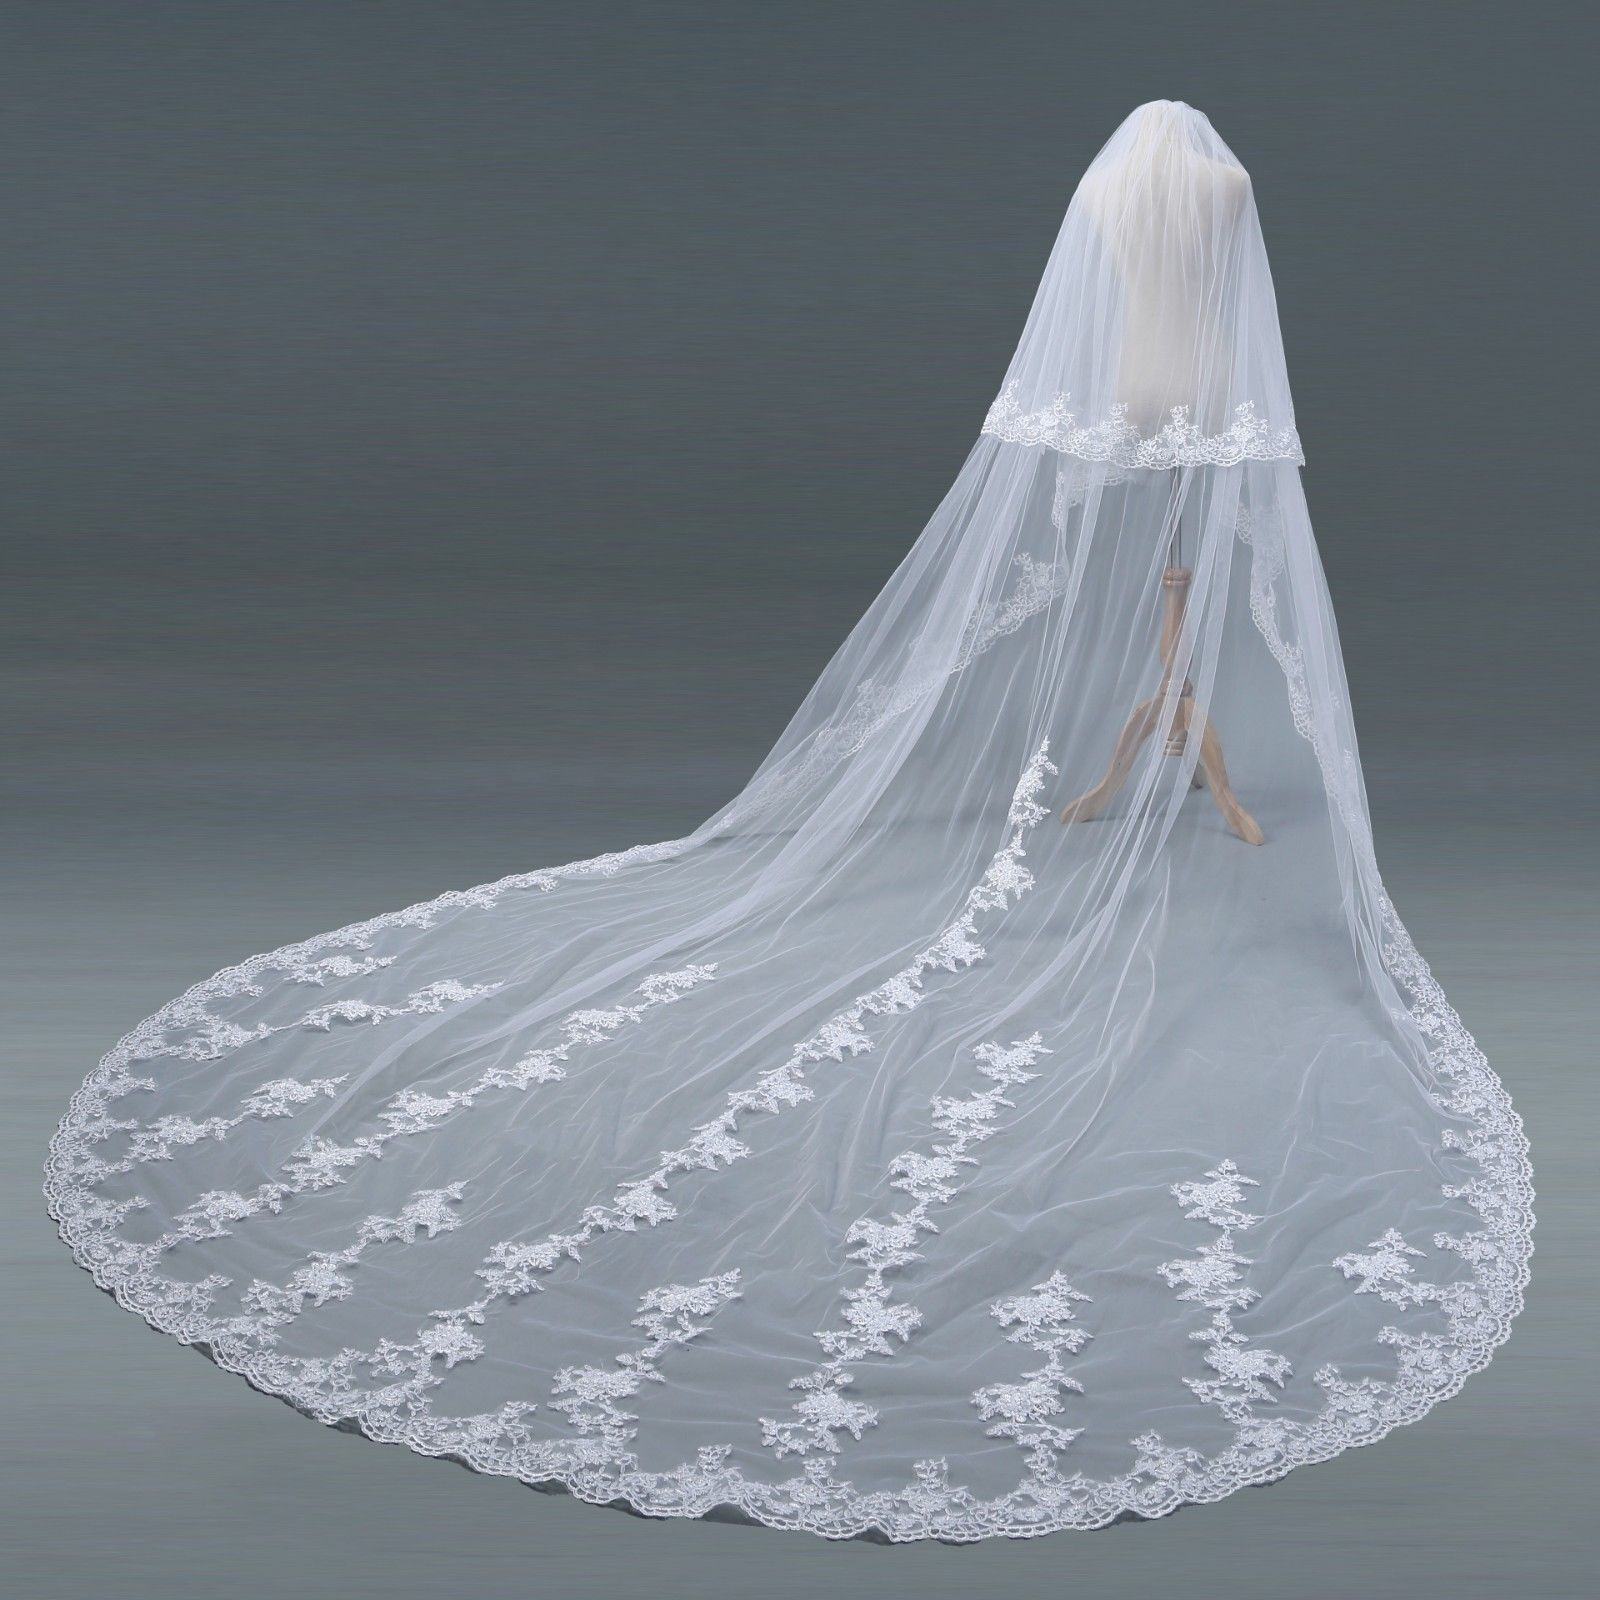 2T Layer Wedding Veils Cathedral Comb Bridal Veils Accessories Veil Cover Face